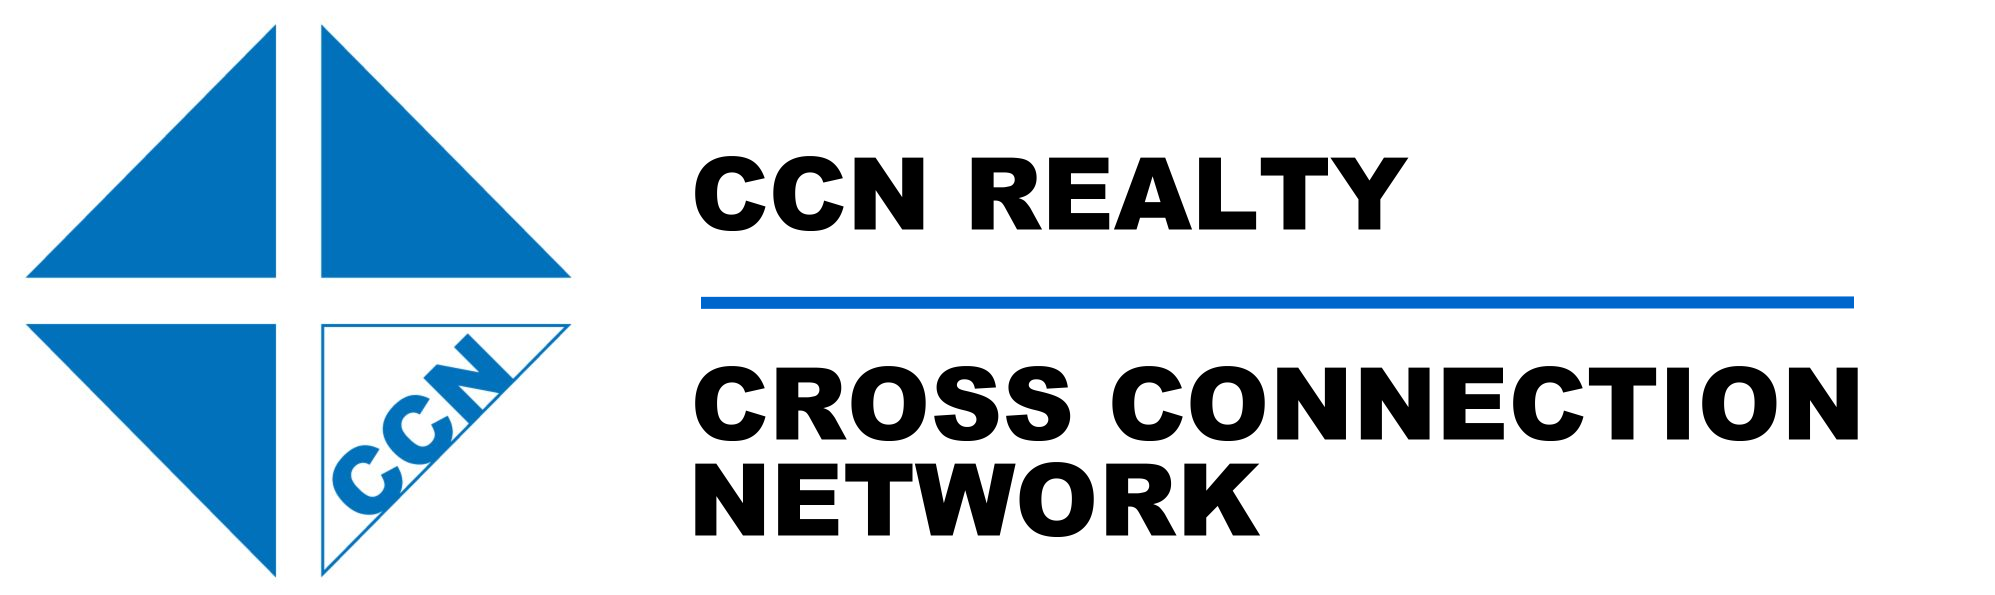 CCN Realty